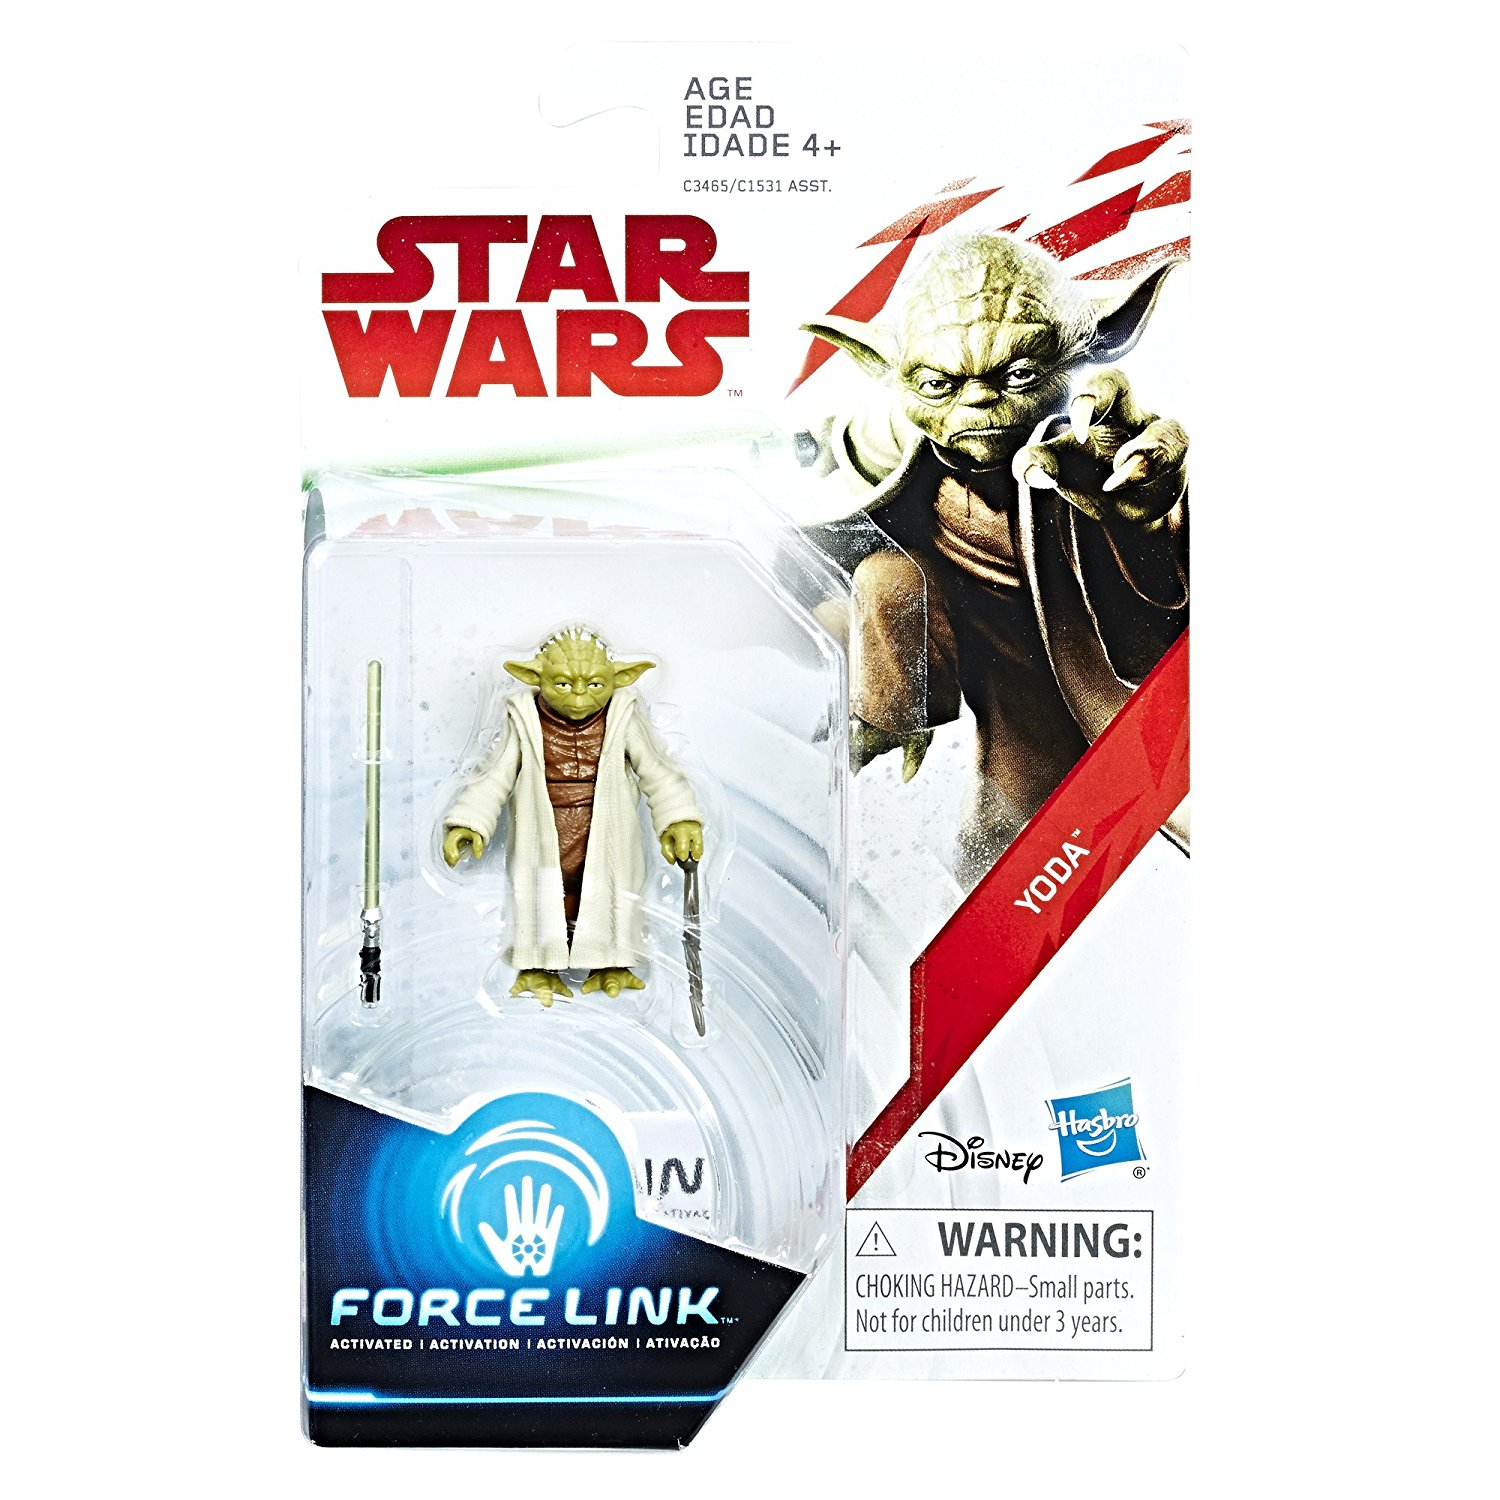 Amazon Lists New Star Wars Force Link 3 3/4″ Figures As In-Stock